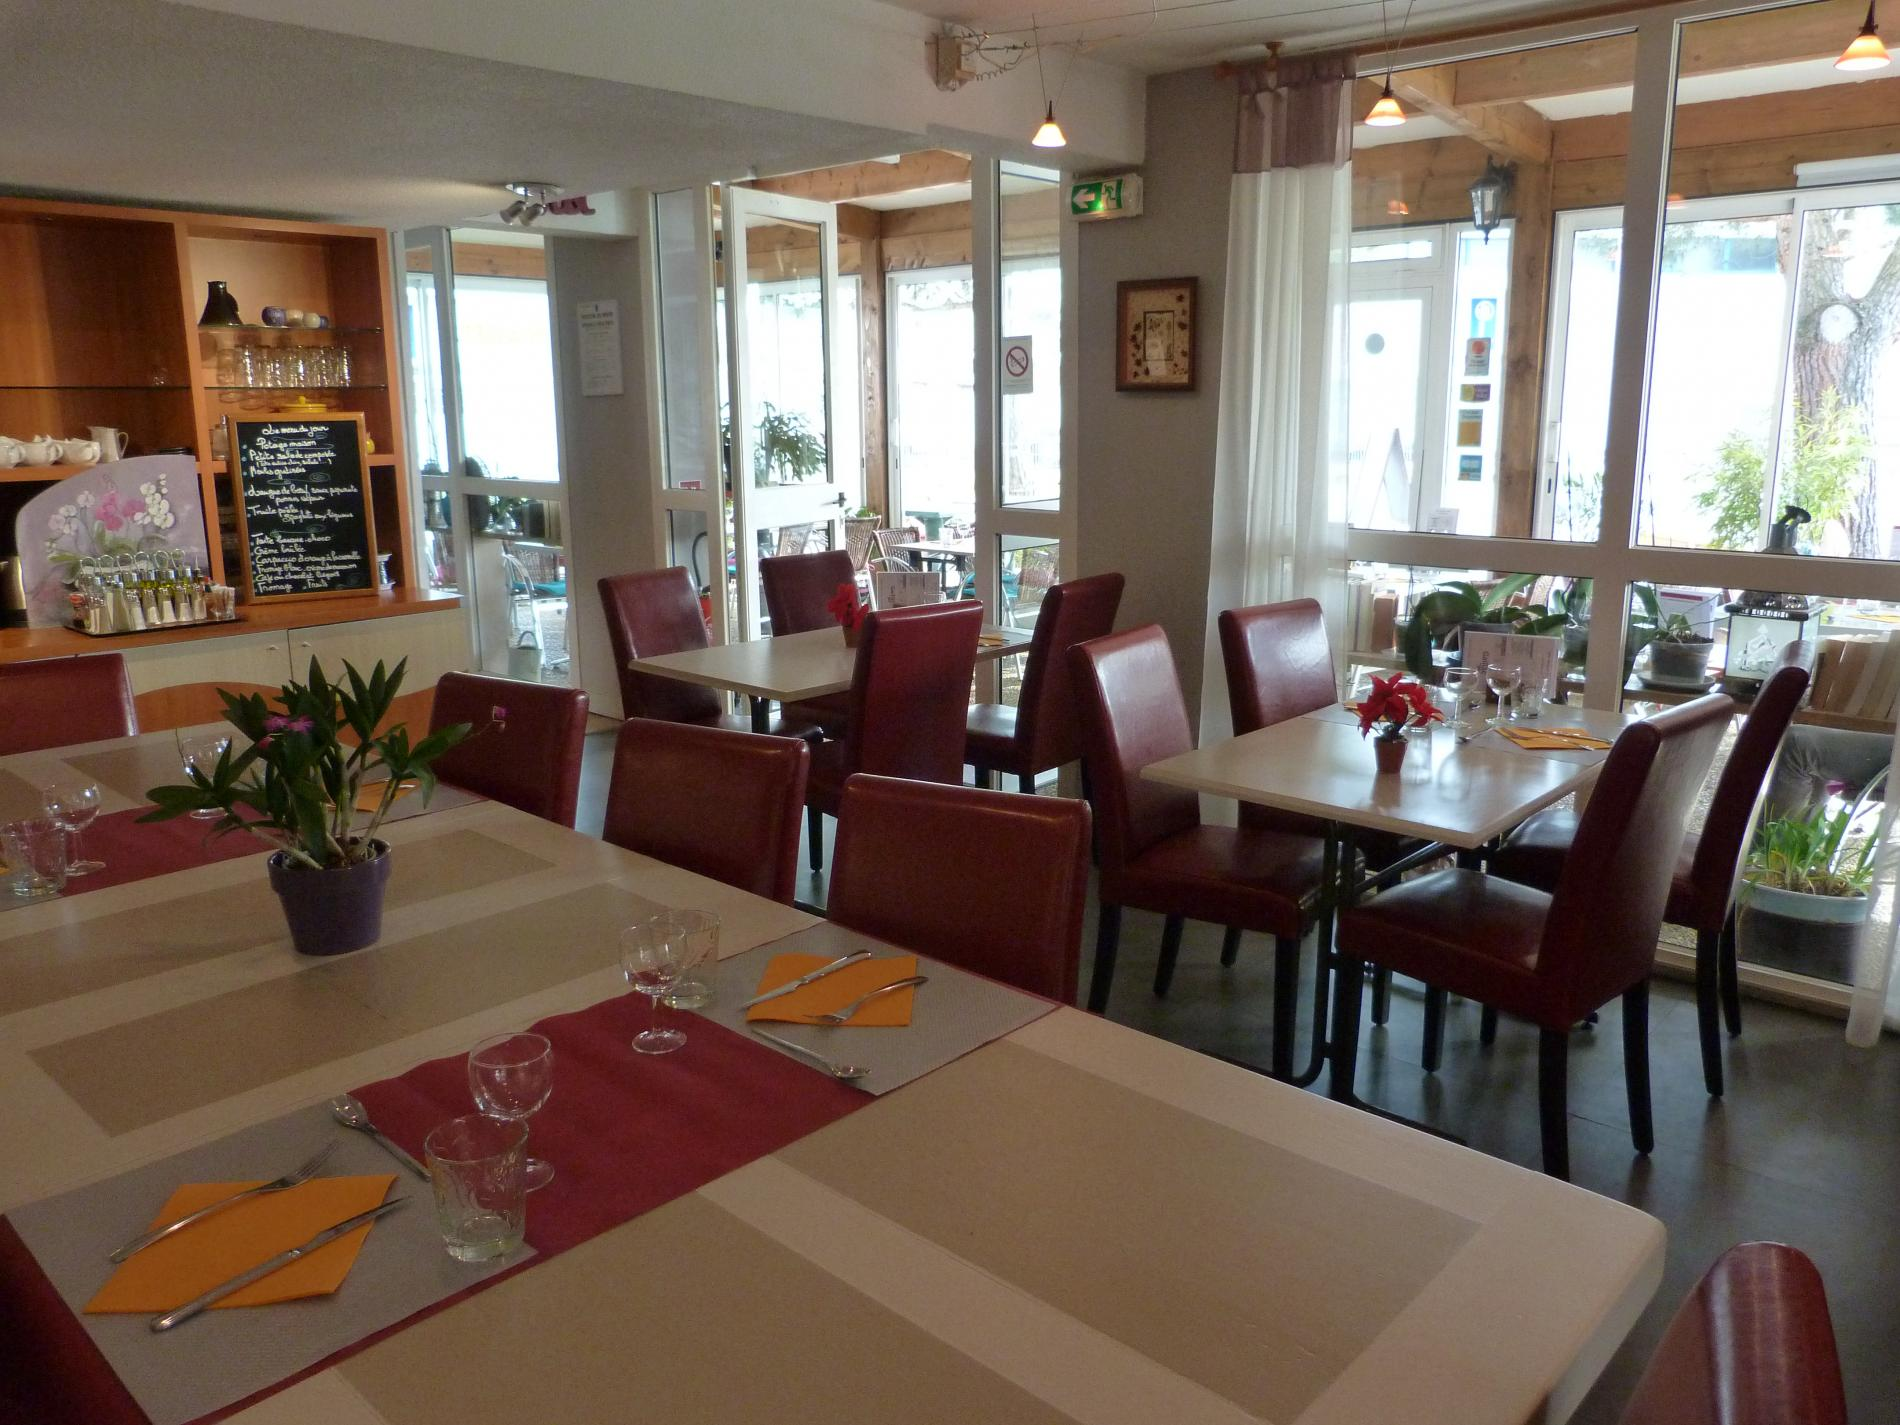 HOTEL RESTAURANT ALBI 25 COUVERTS